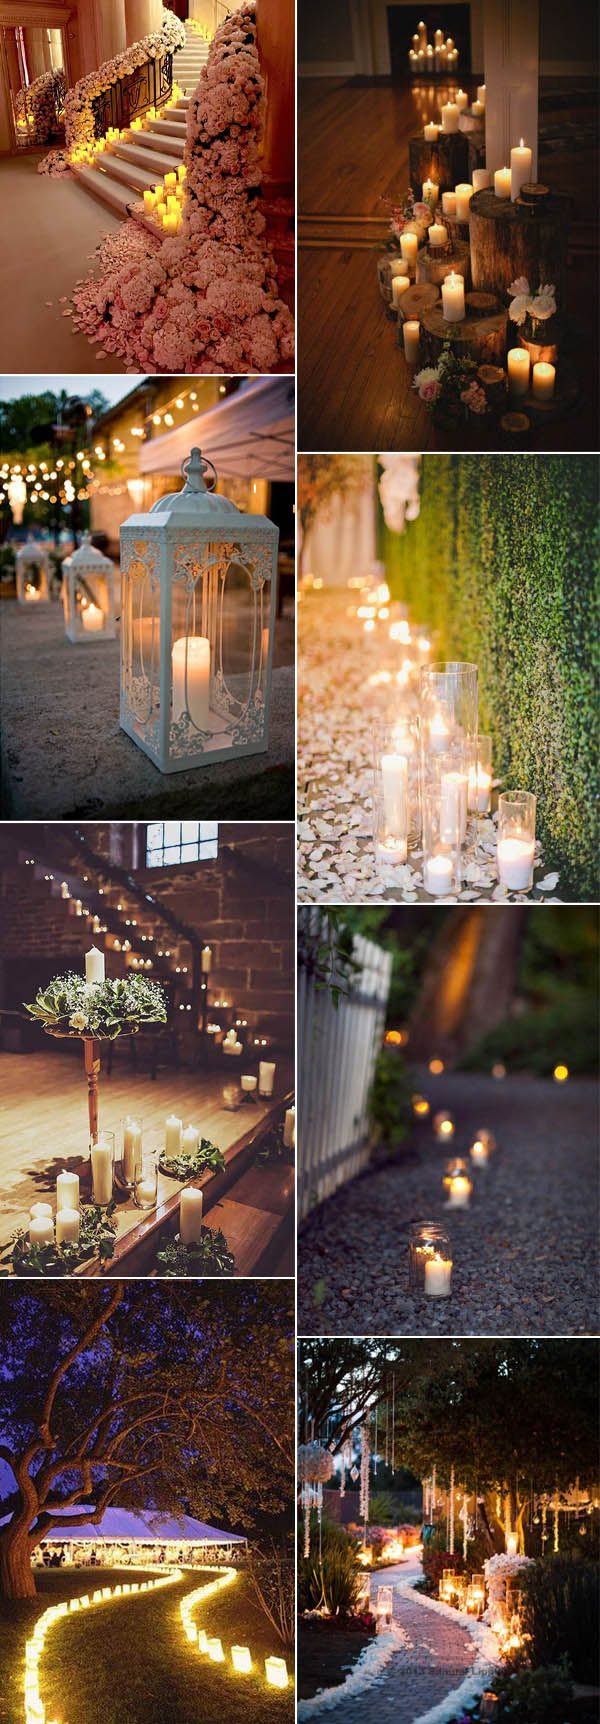 Best 25 Candlelight Wedding Ideas On Pinterest Simple